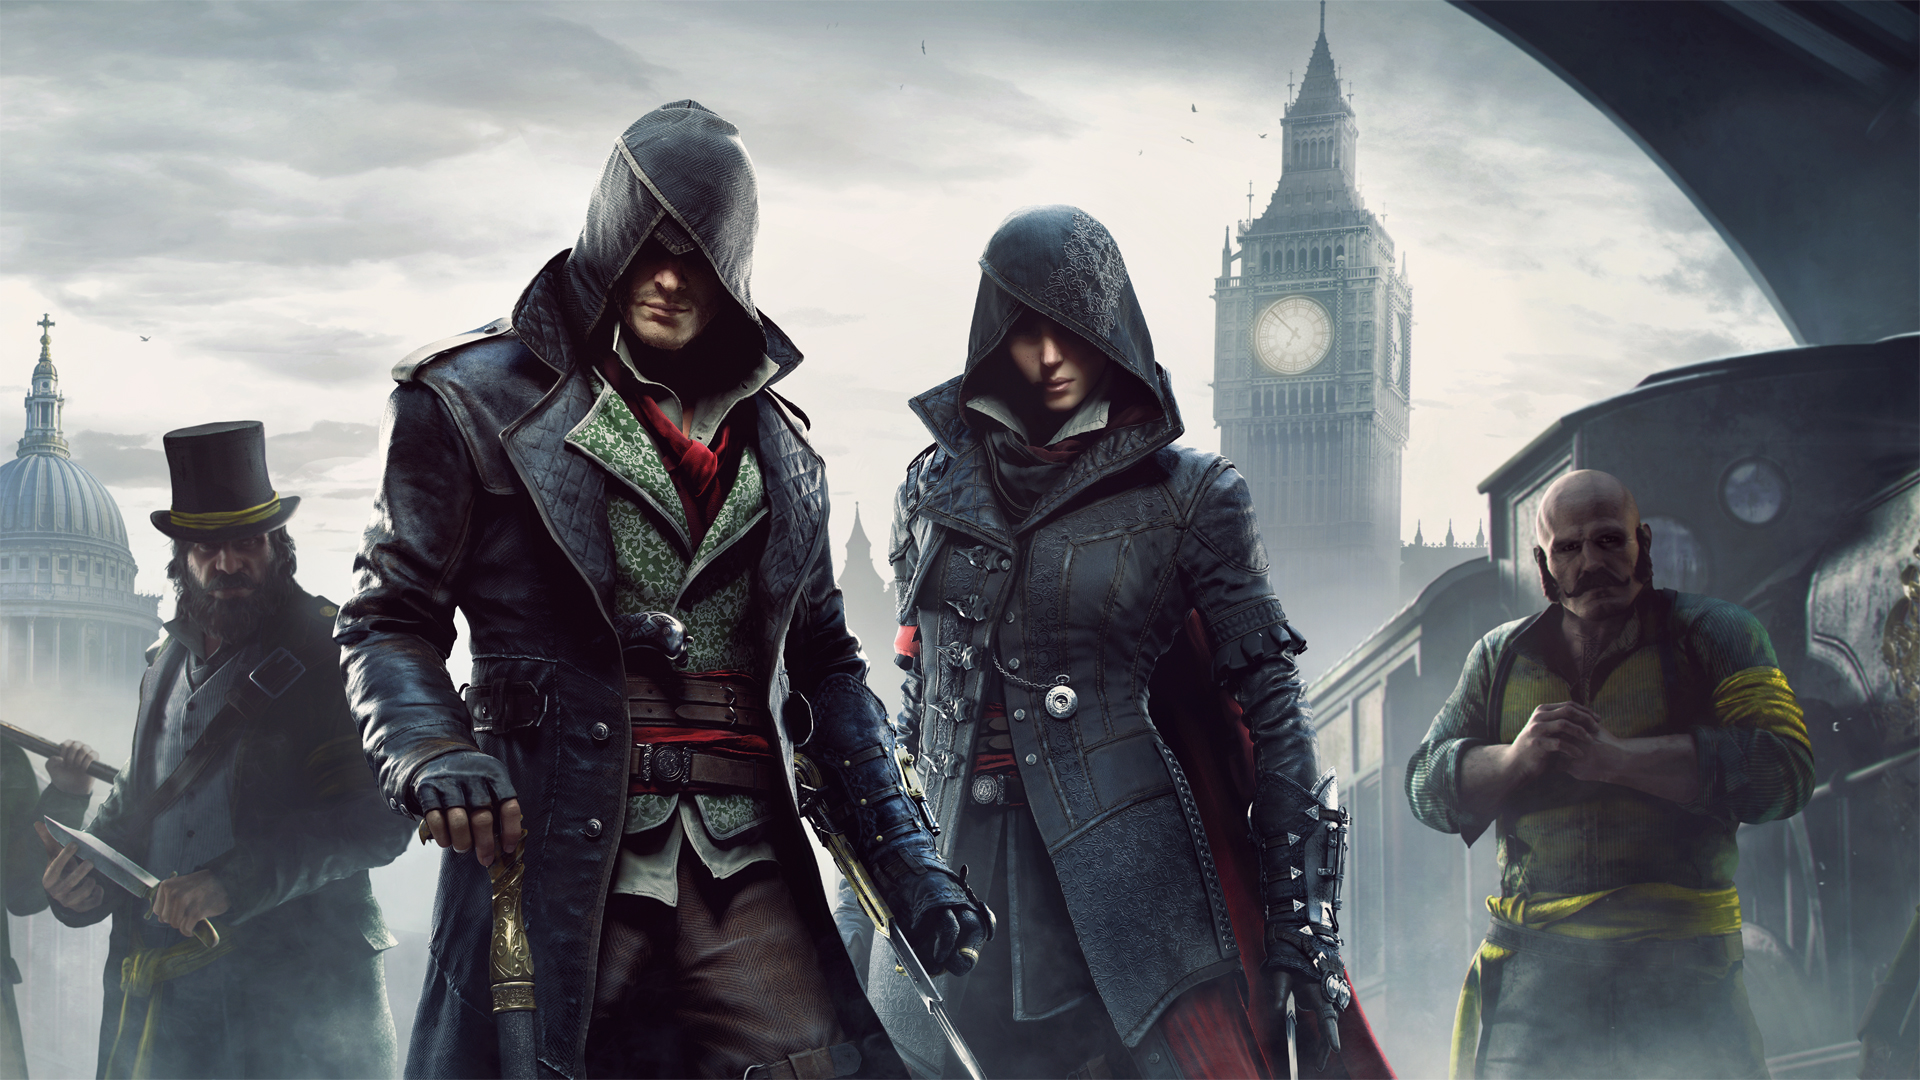 Assassin S Creed All Assassins Ranked From Worst To Best Ladbible